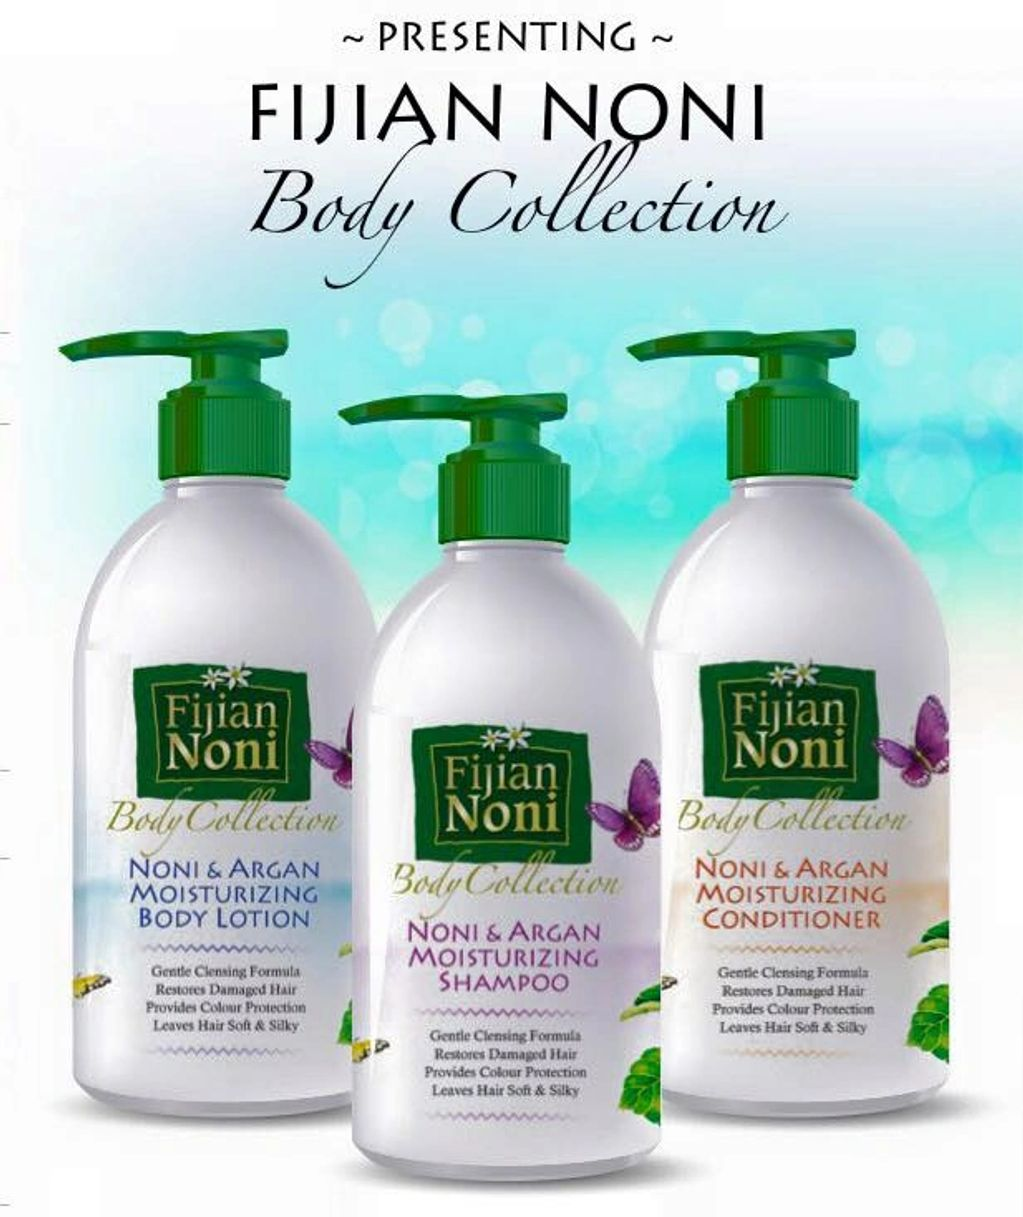 Noni Body Lotion.